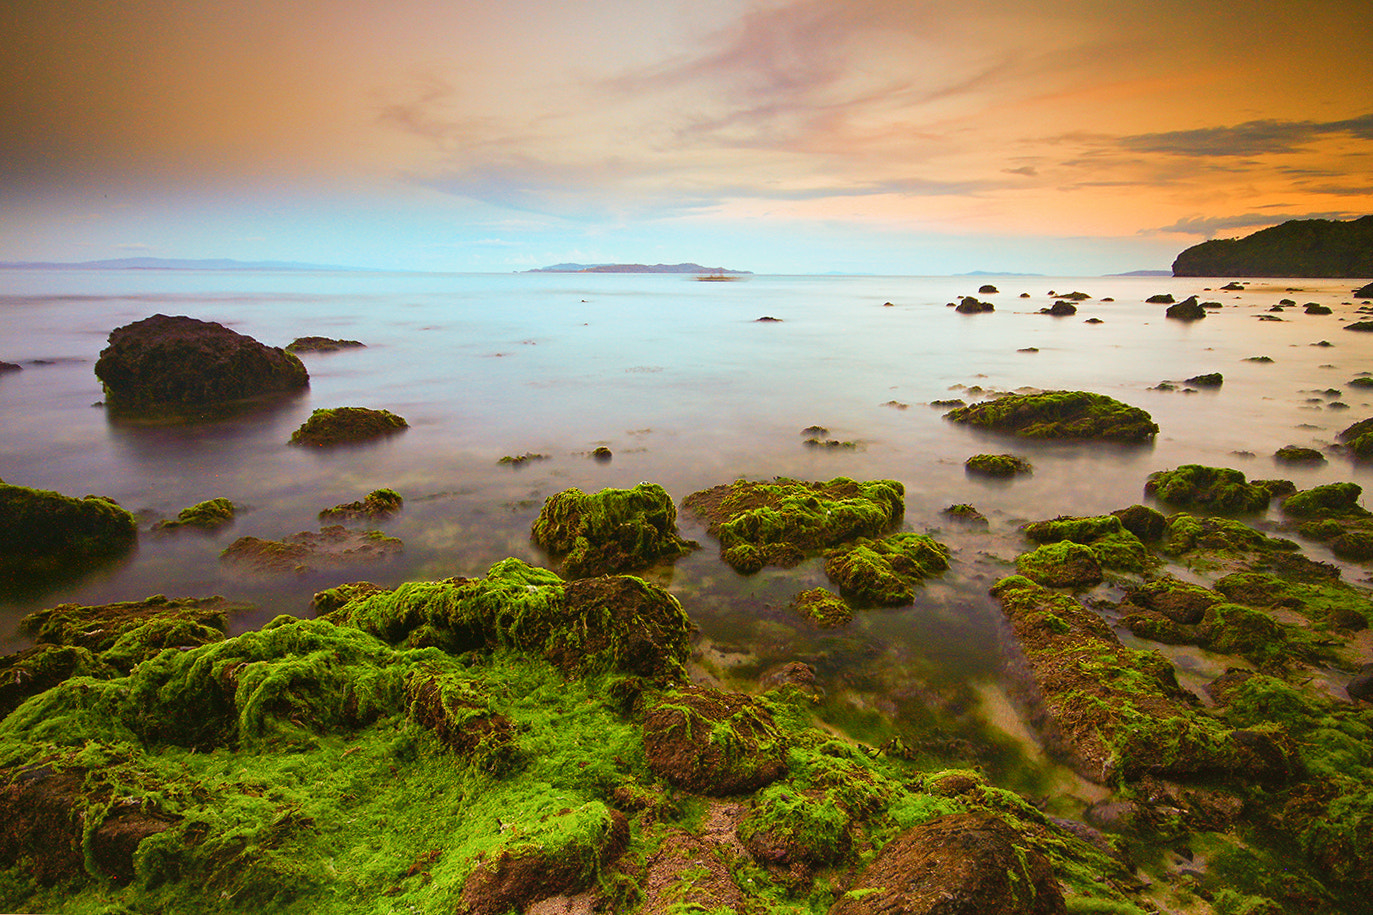 Photograph sea weeds by Raymond Recato on 500px